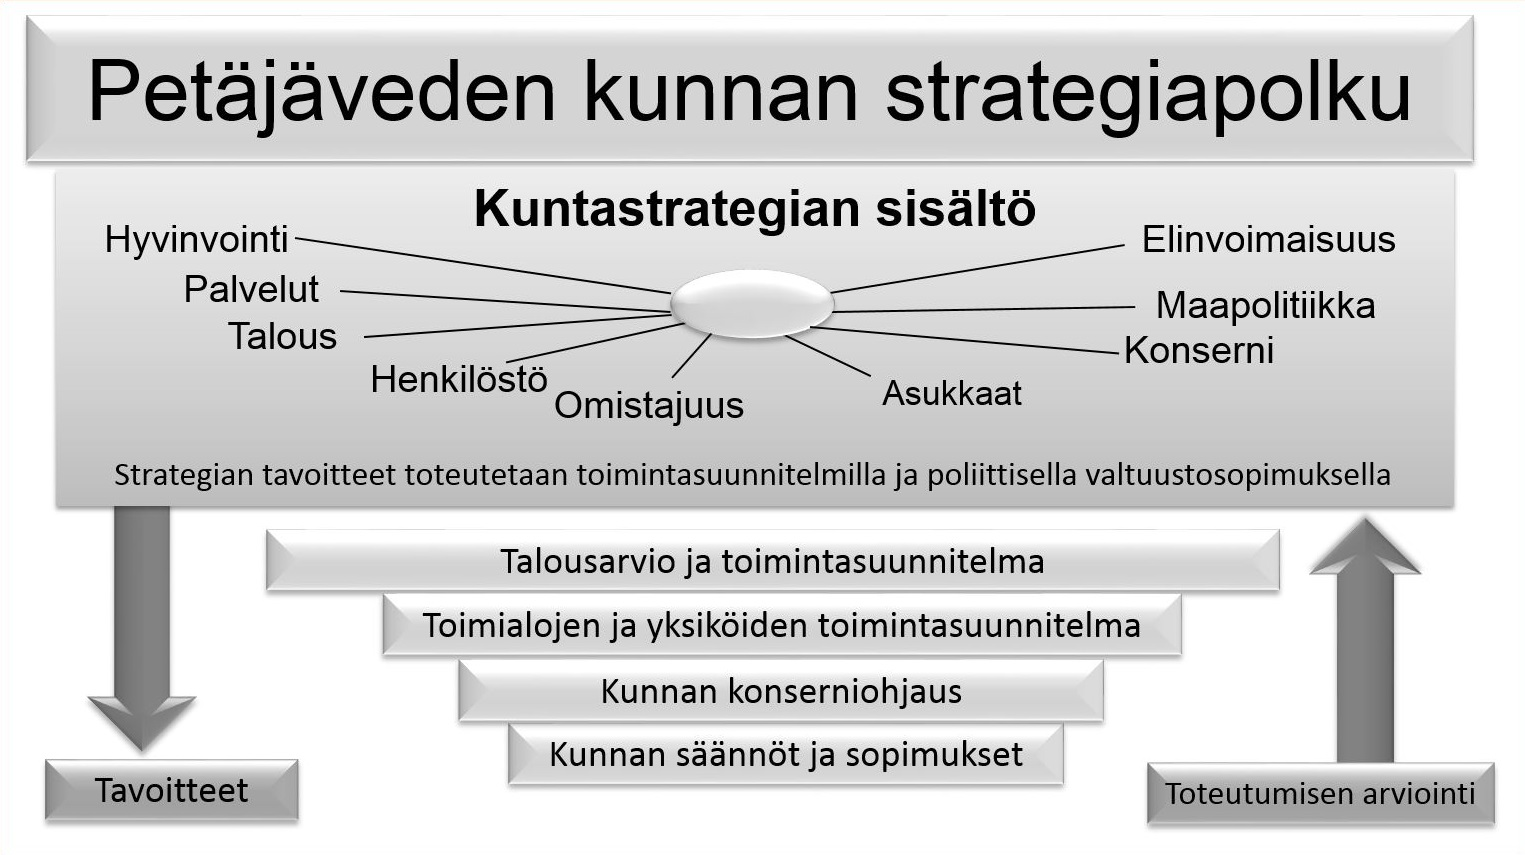 Strategiapolku